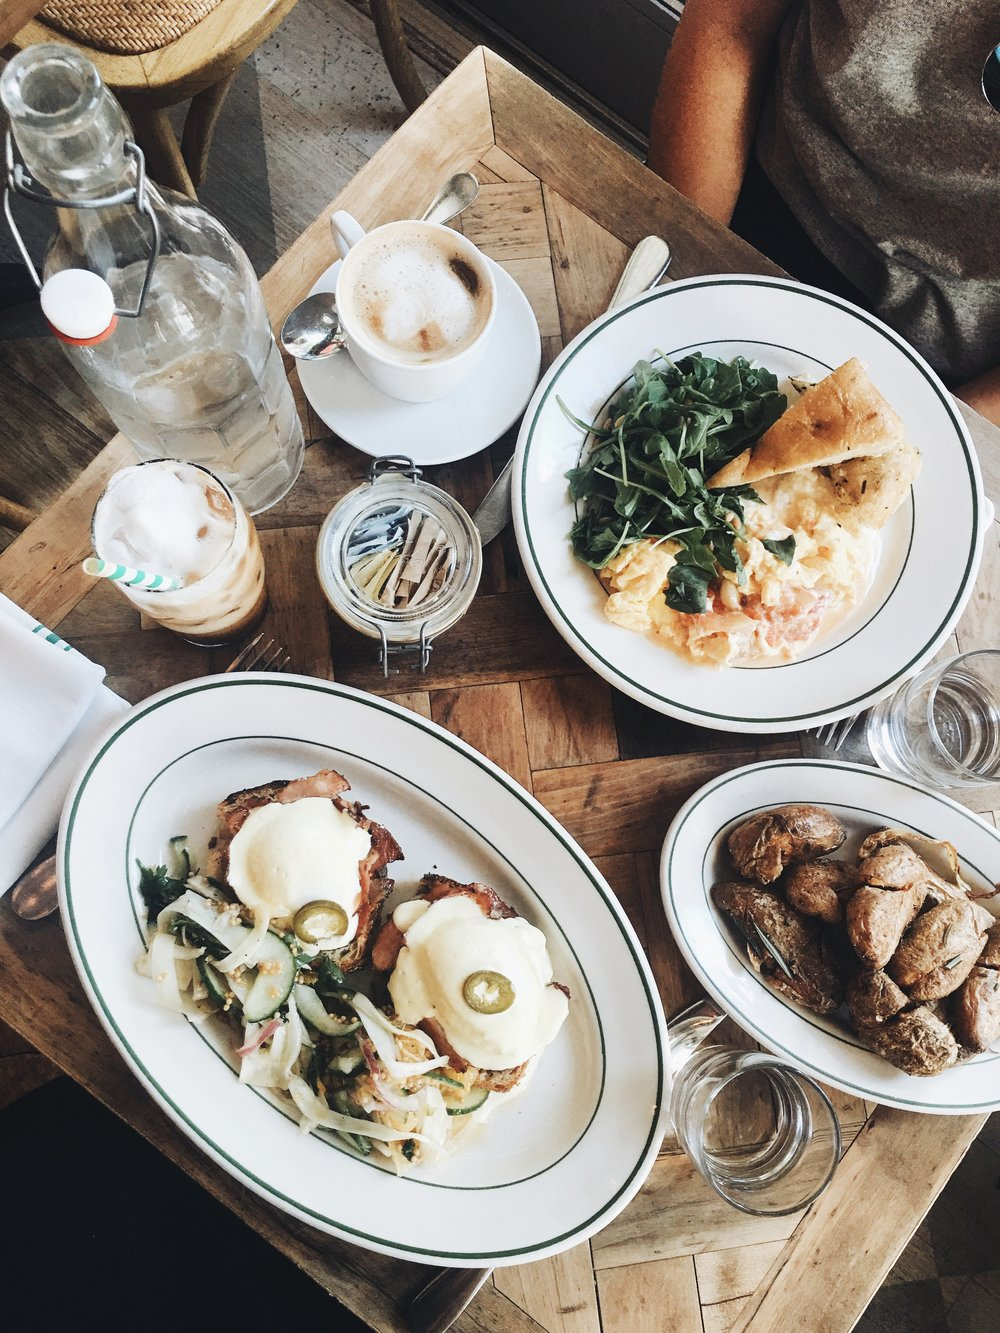 Rosemary's . // One of my favorite spots for brunch or dinner in West Village.